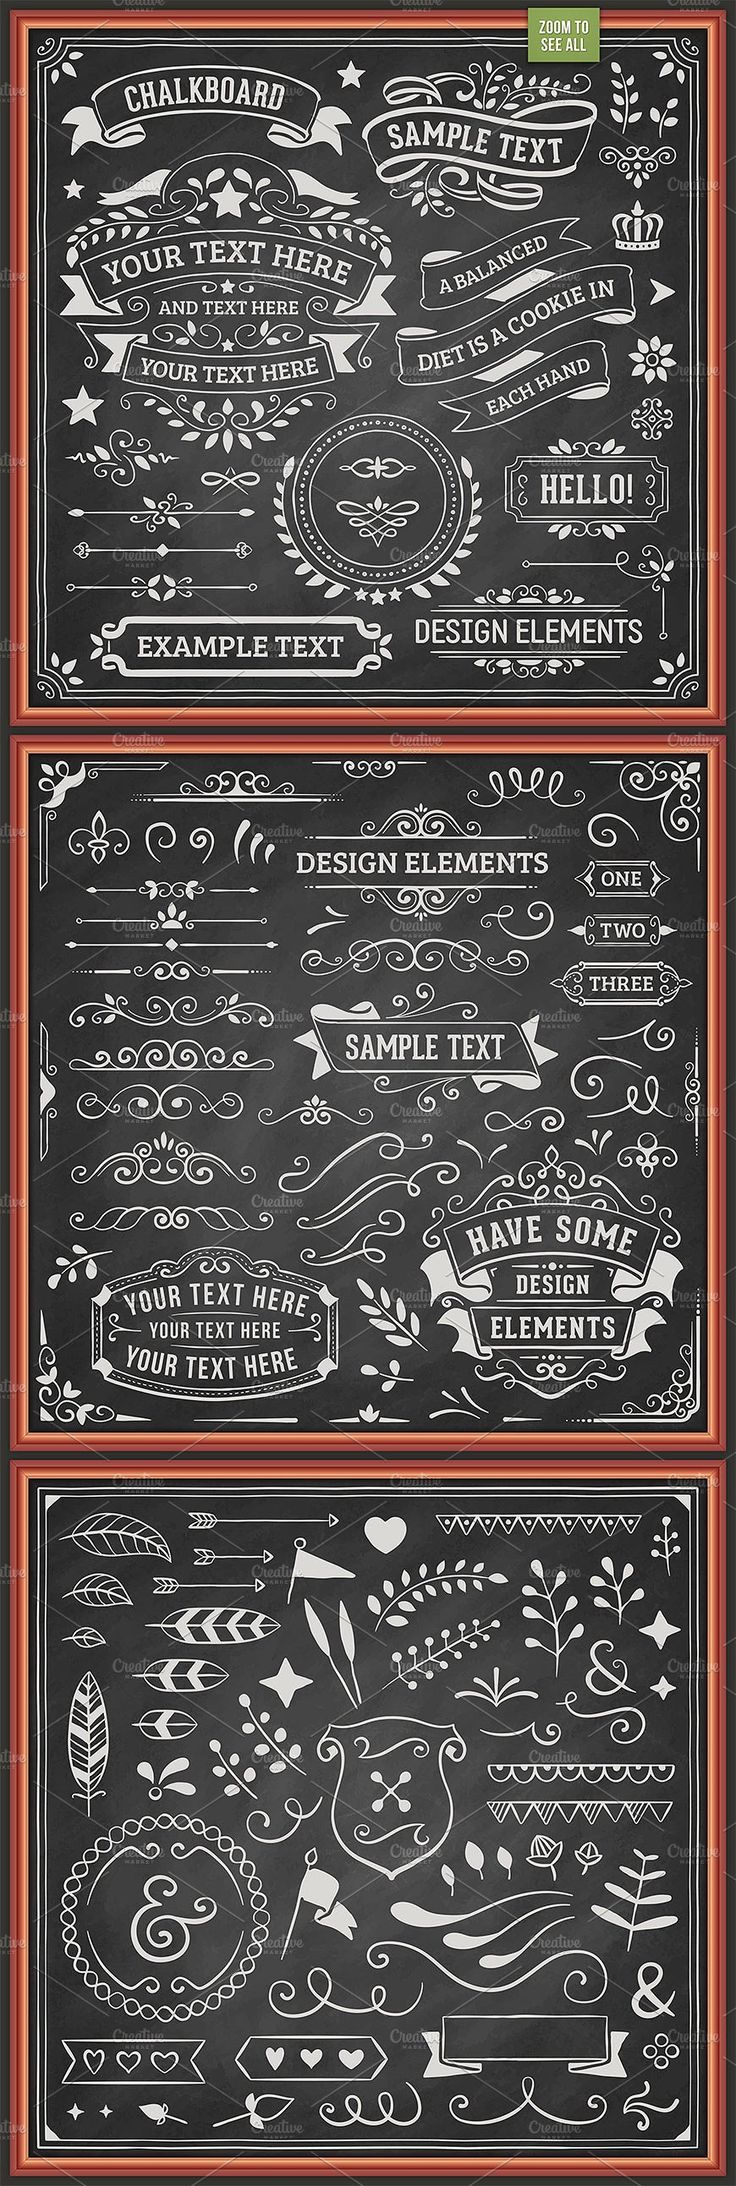 Chalkboard Design Elements by Swedish Points on @creativemarket